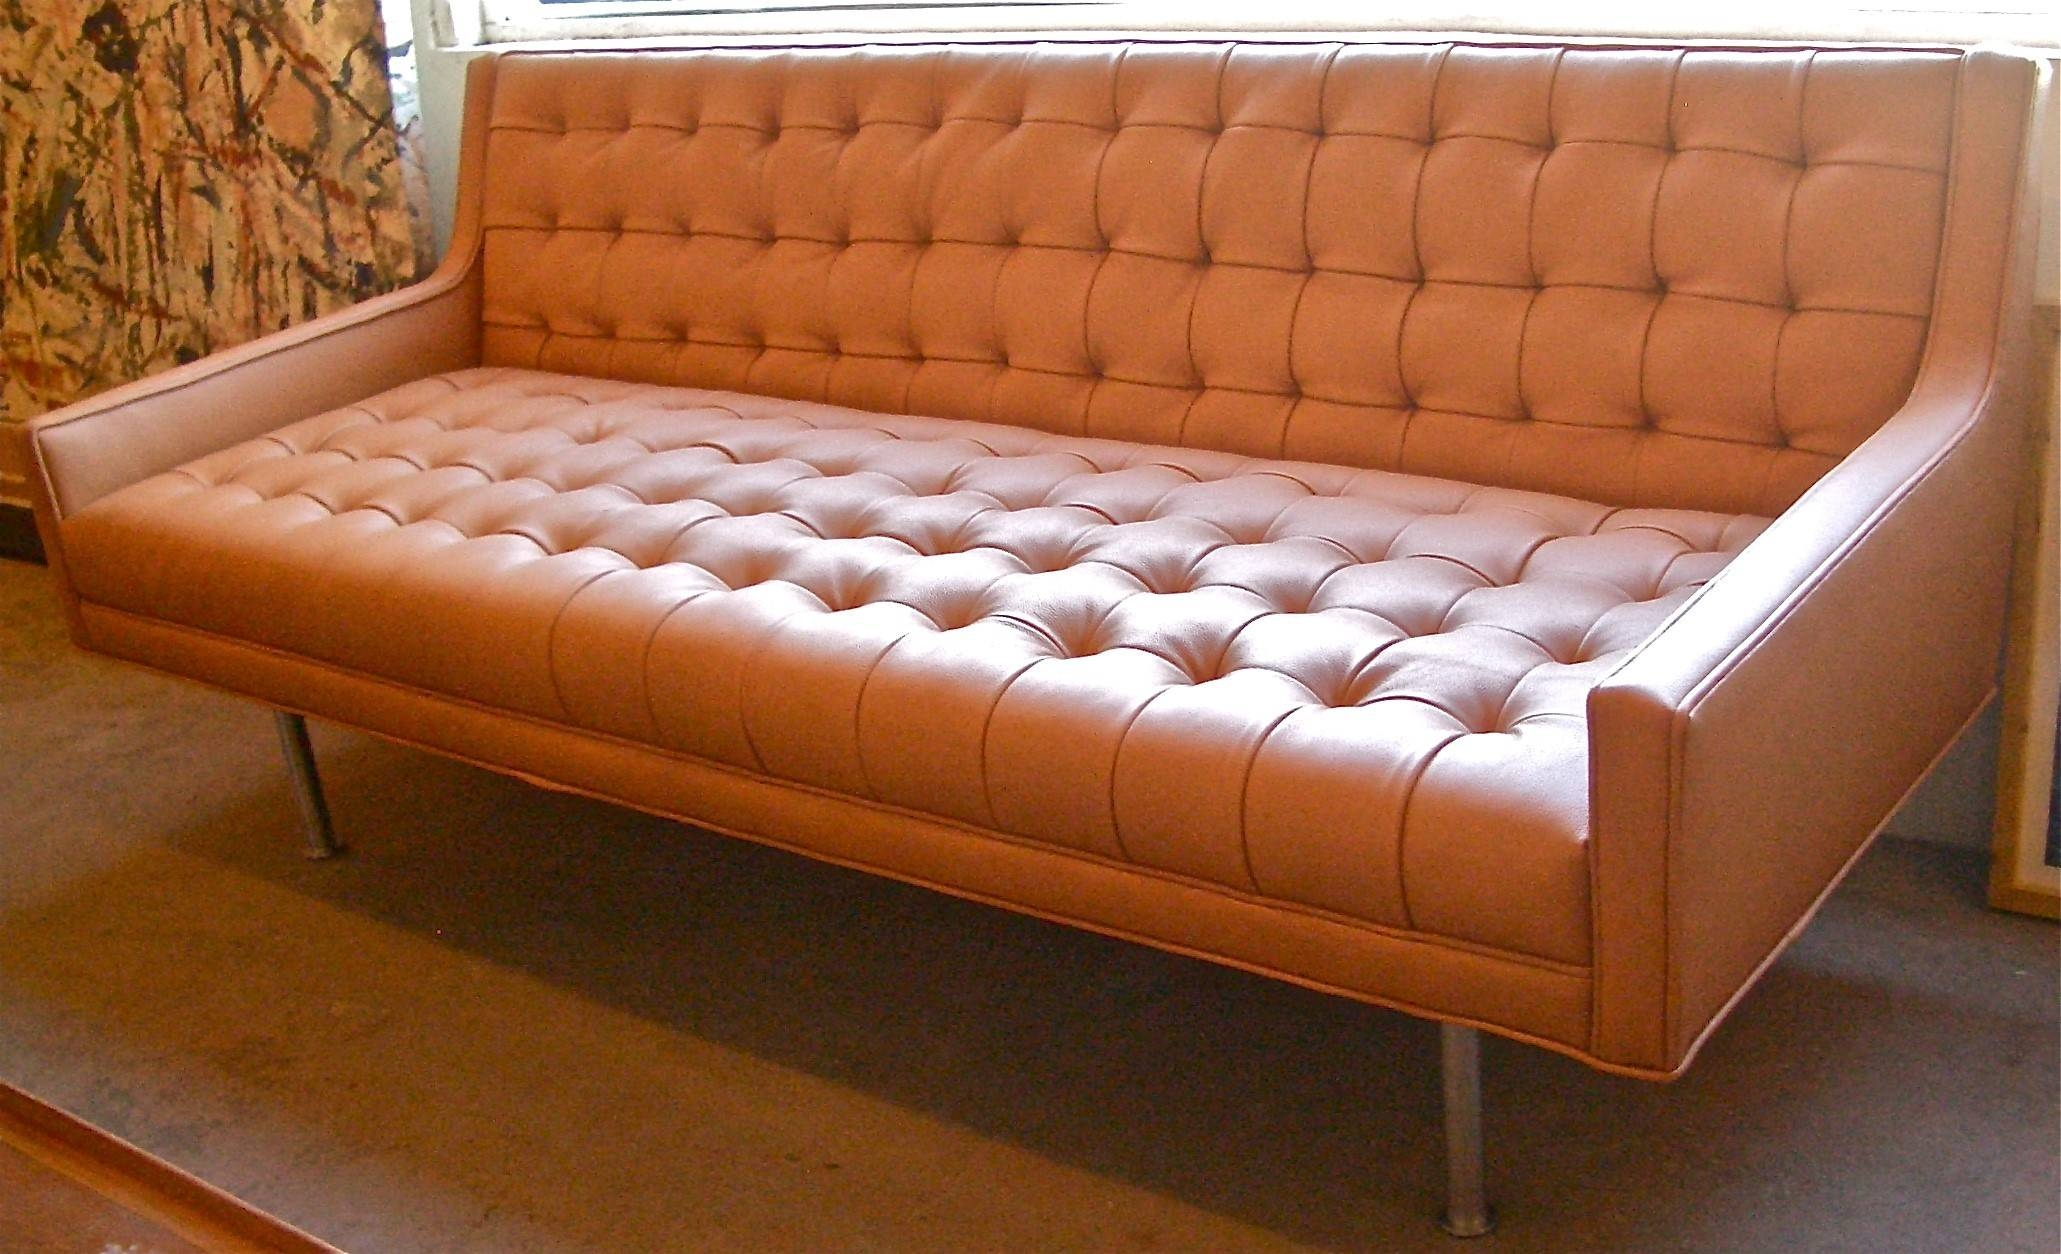 Craigslist Leather Sofa With Design Hd Pictures 16885 | Kengire throughout Craigslist Leather Sofa (Image 6 of 30)